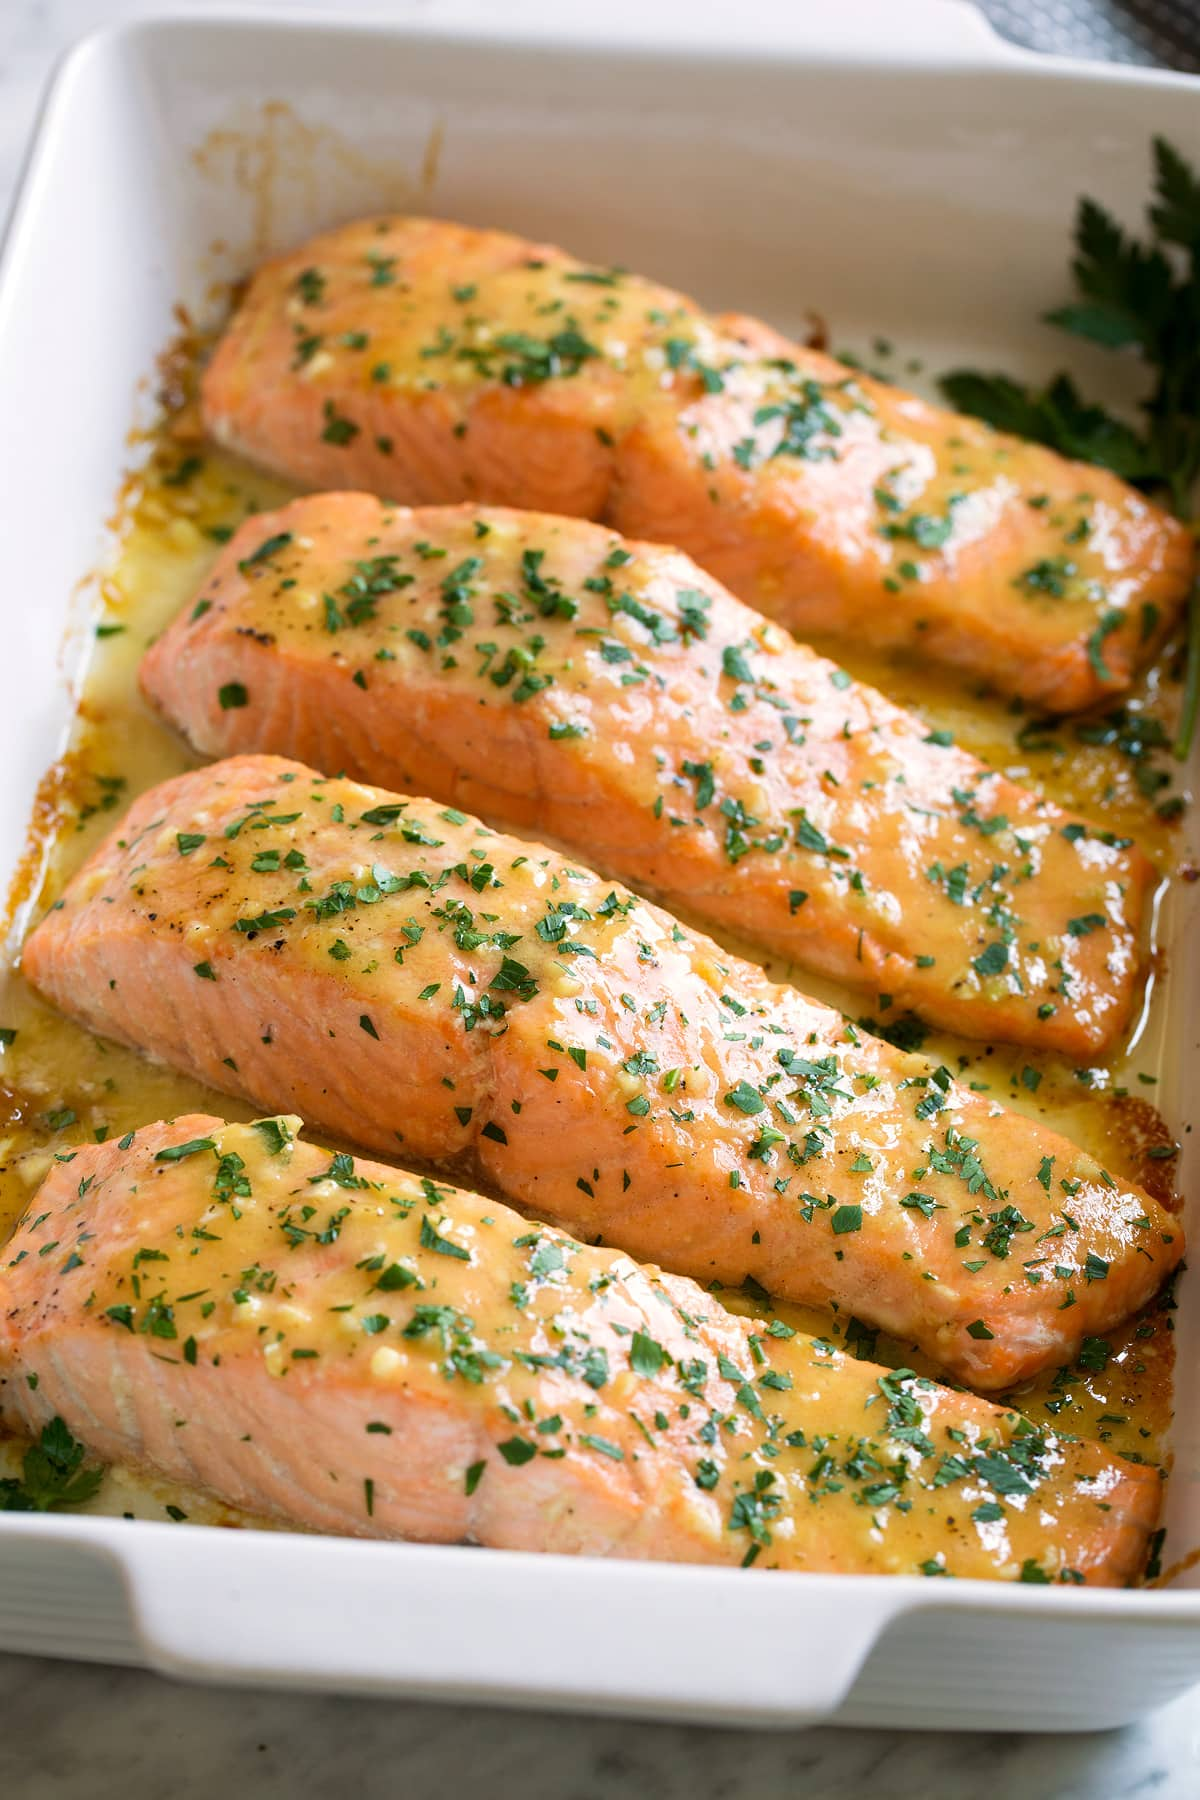 Four salmon fillets in a baking dish brushed with a sweet and tangy, buttery honey mustard sauce.